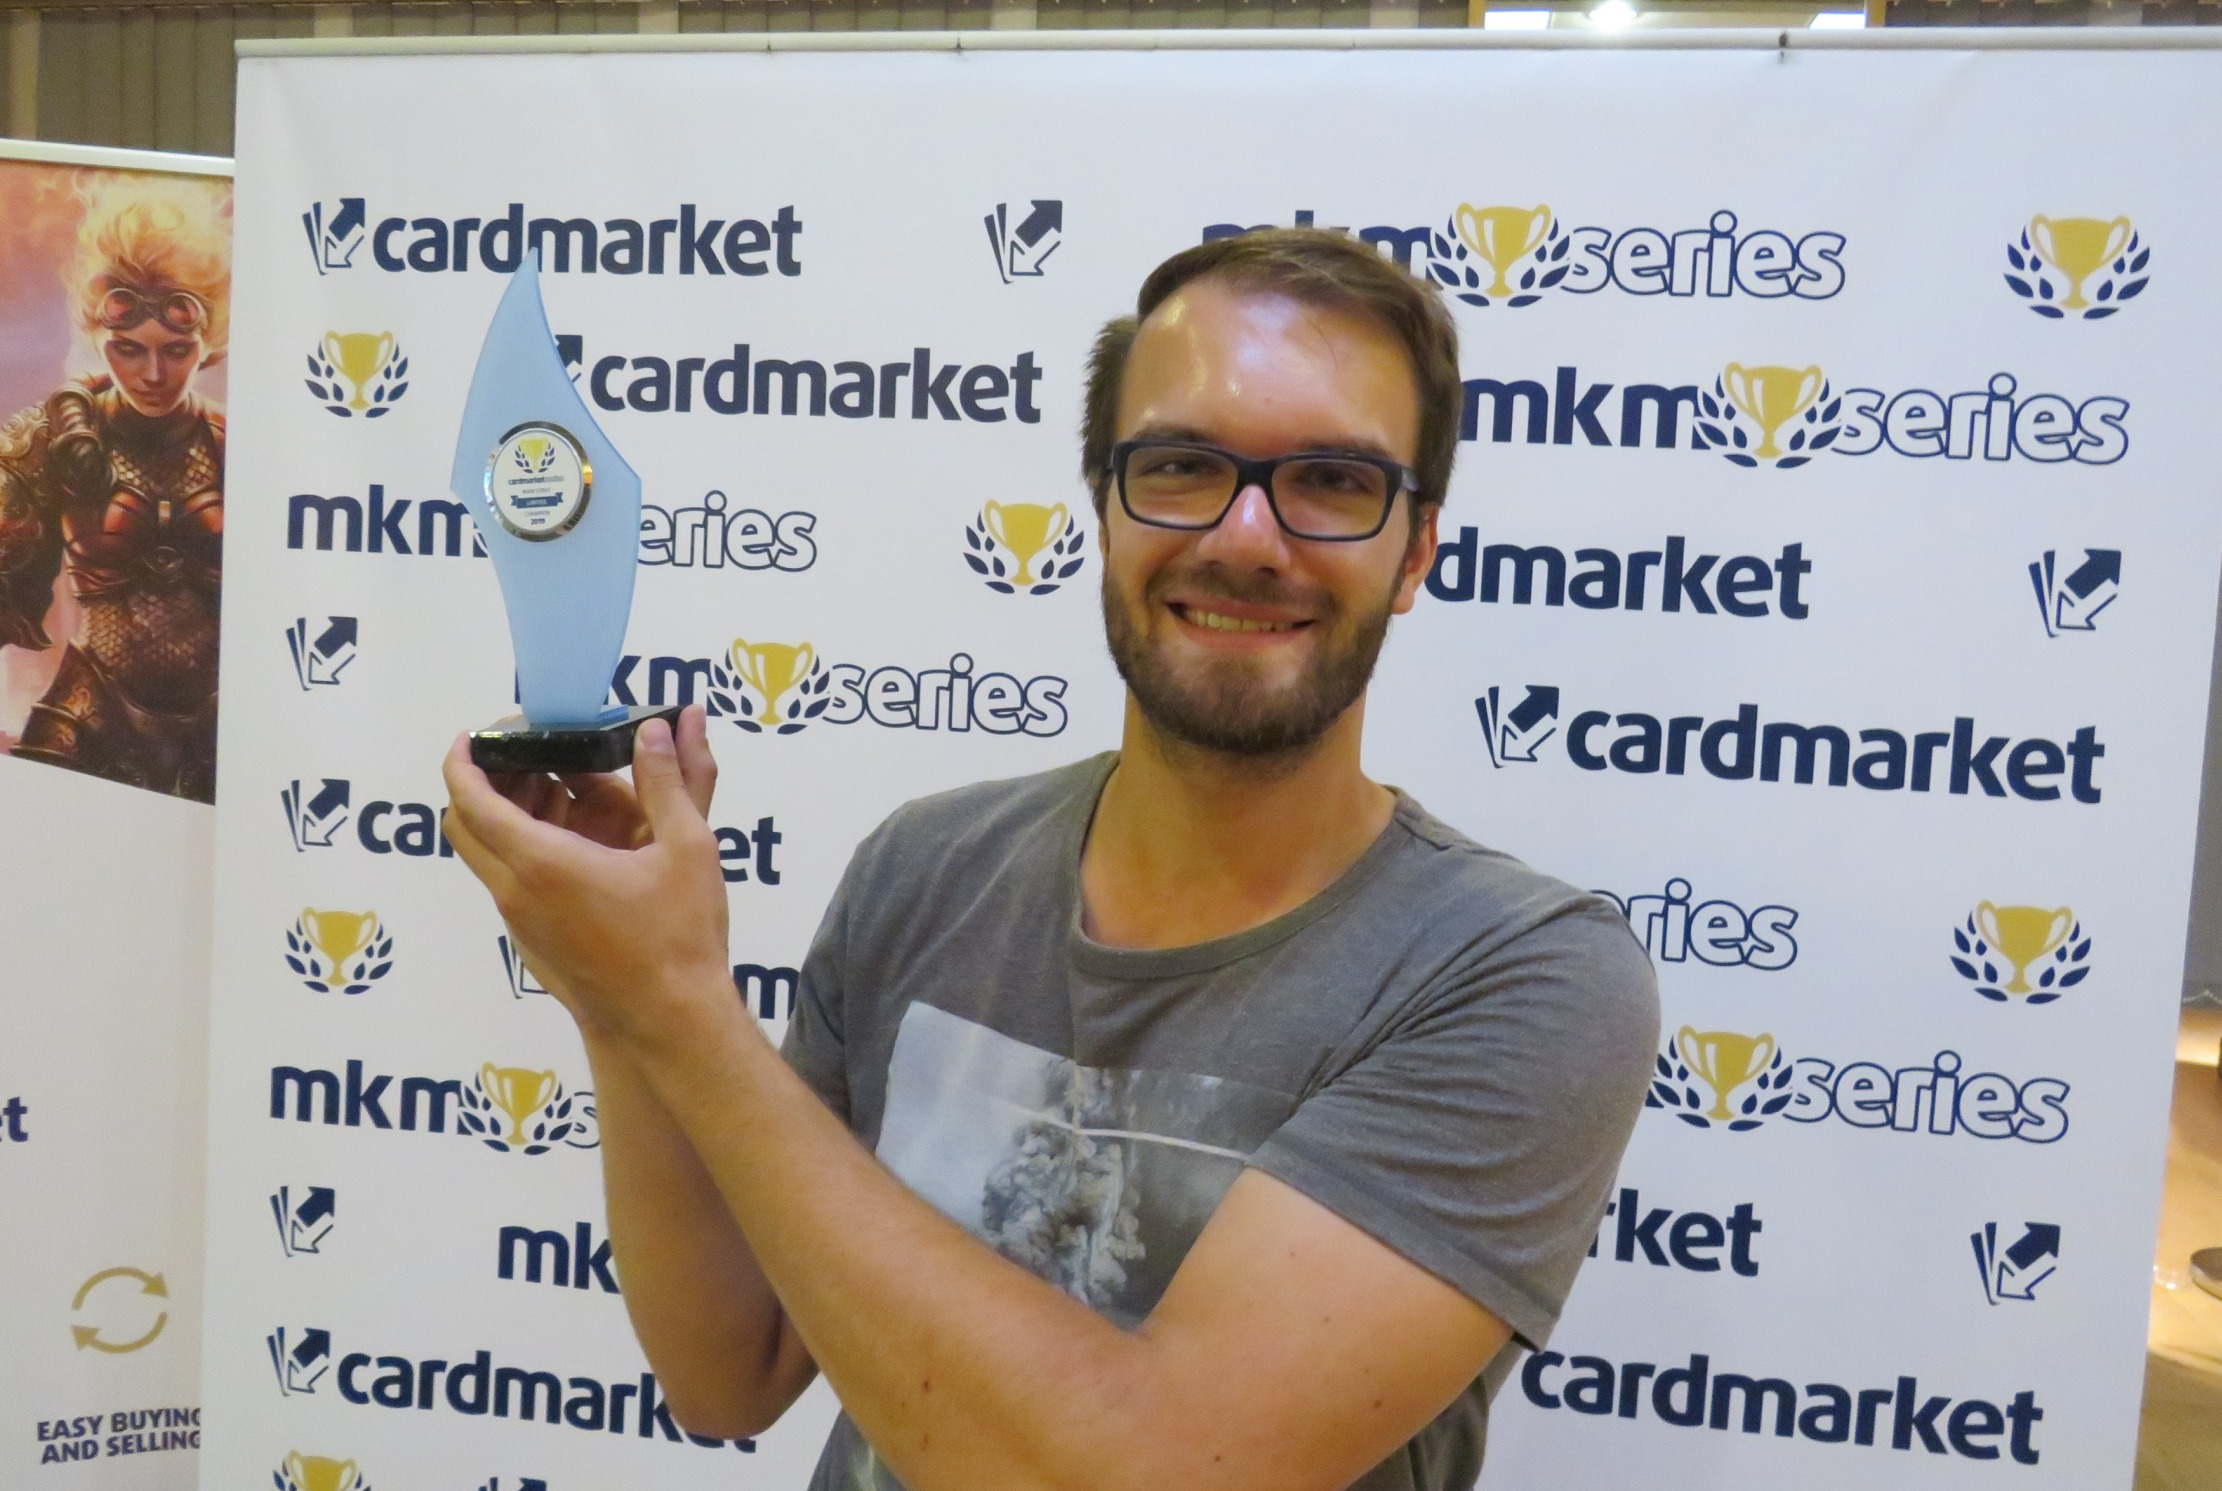 Previously at the Cardmarket Series: Limited in Frankfurt